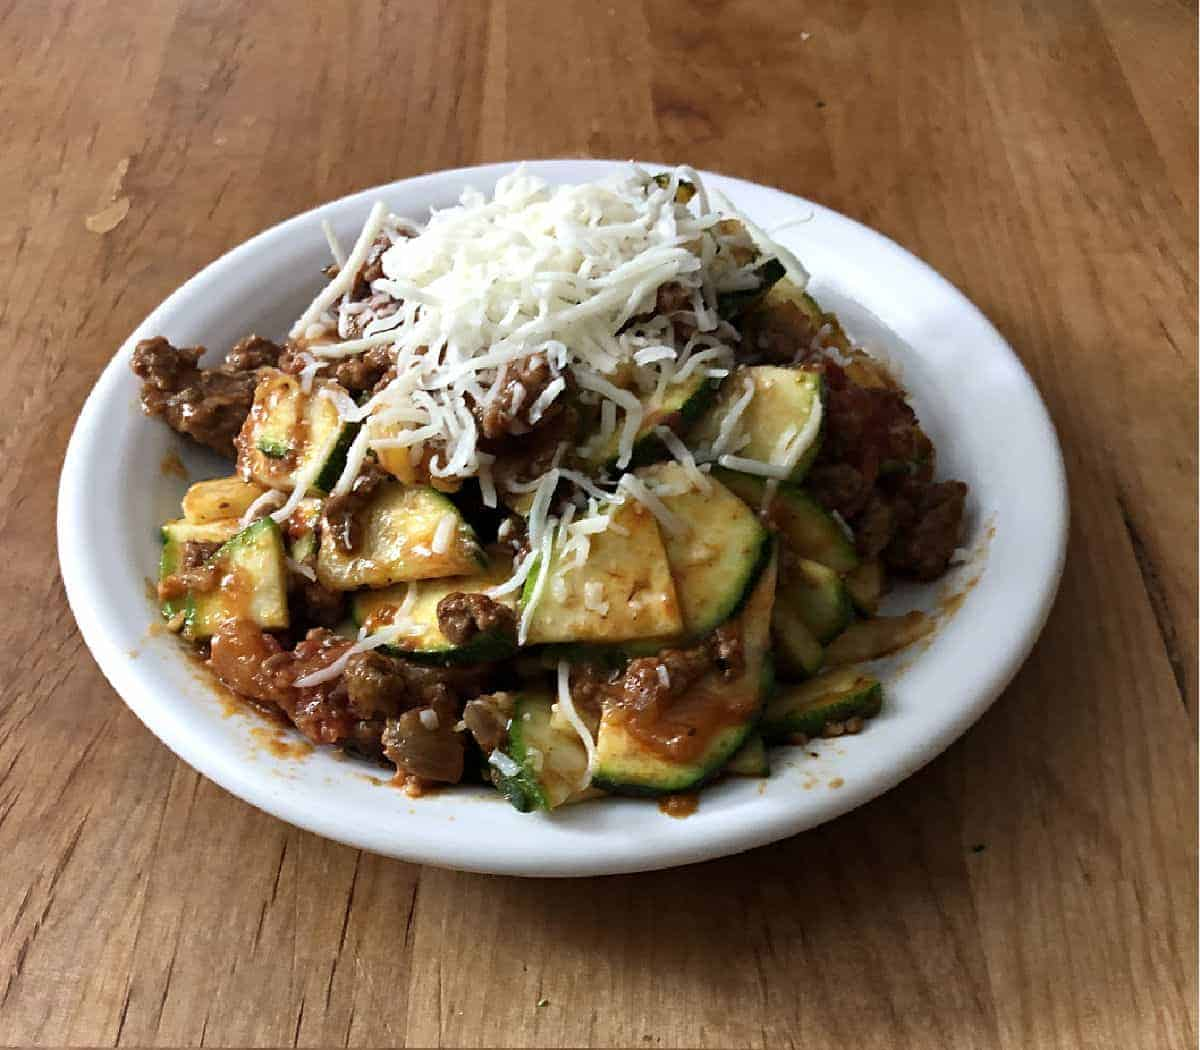 Zucchini and beef casserole on a white plate